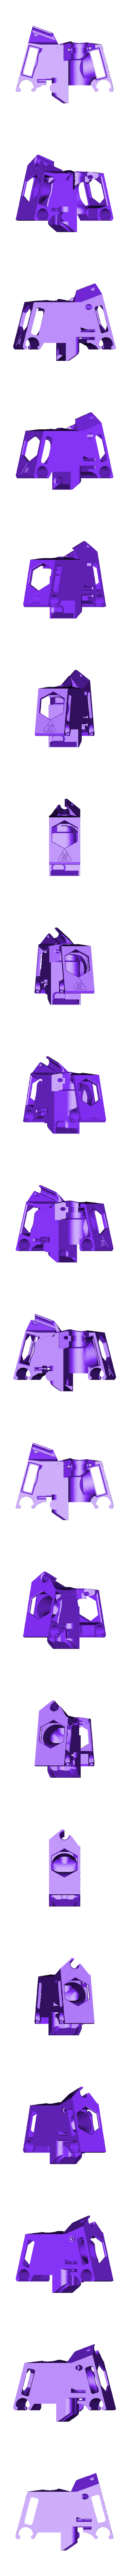 tete_V3_modifi%C3%A9_extrudeur_d%C3%A9port%C3%A9.stl Download free STL file Discoeasy 200 tete V3 modifié • 3D printable template, Cyborg